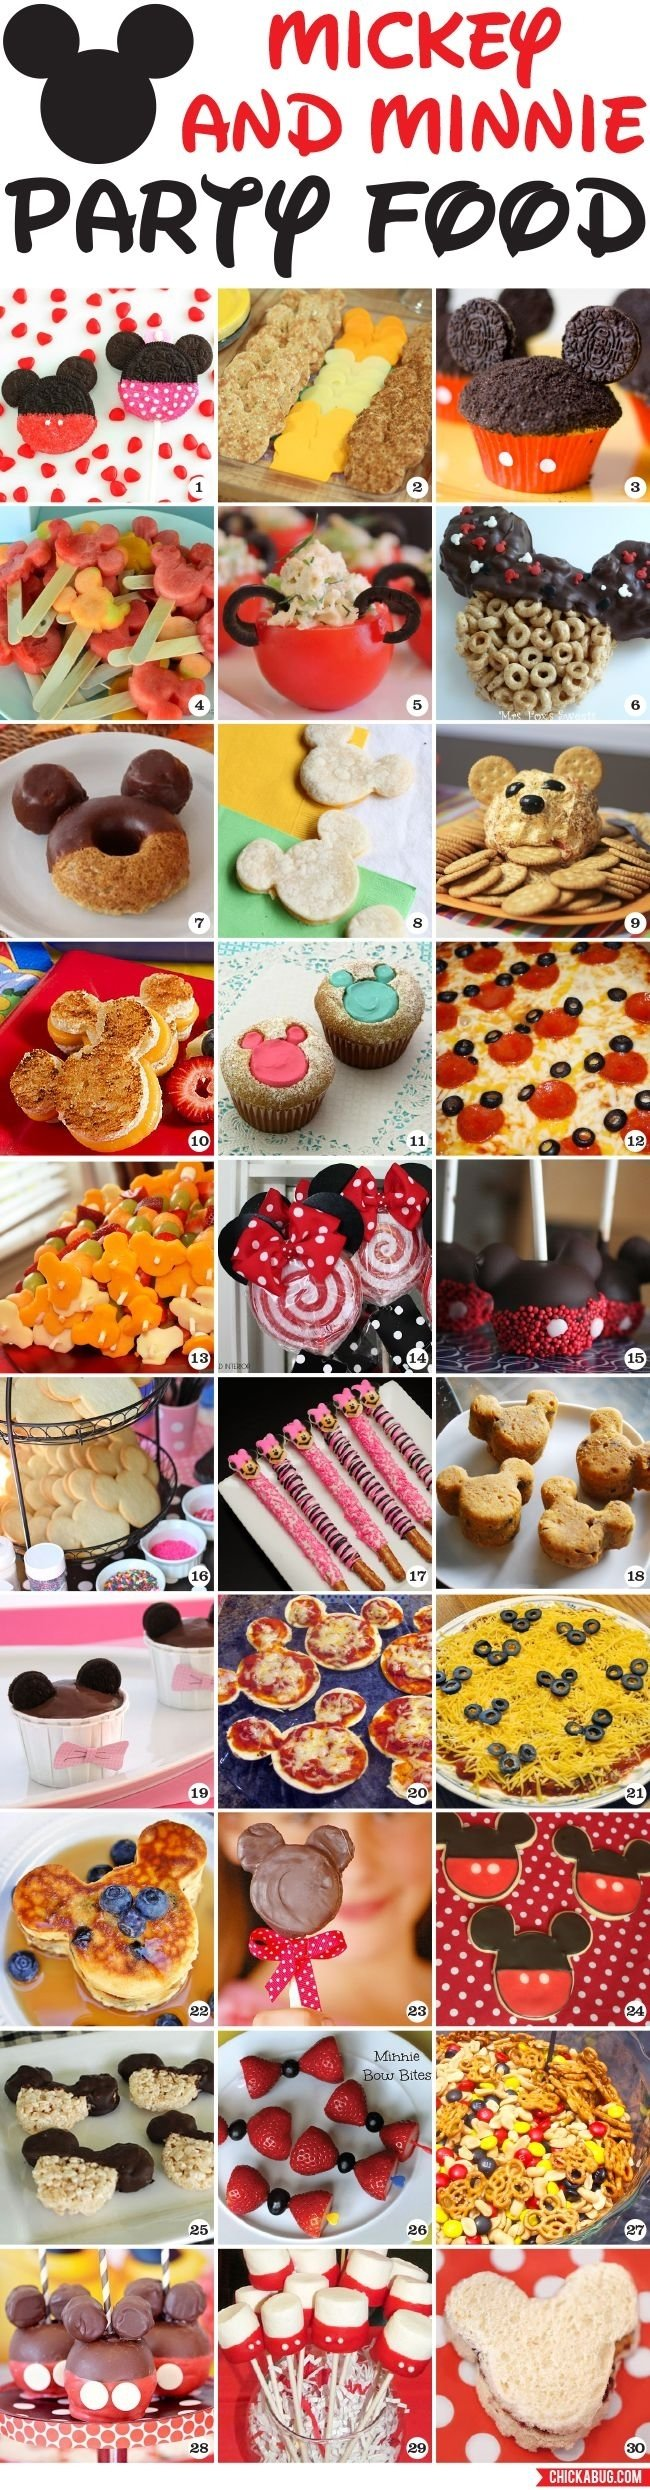 10 Nice Minnie Mouse Party Food Ideas 30 awesome mickey mouse and minnie mouse party food ideas minnie 2021